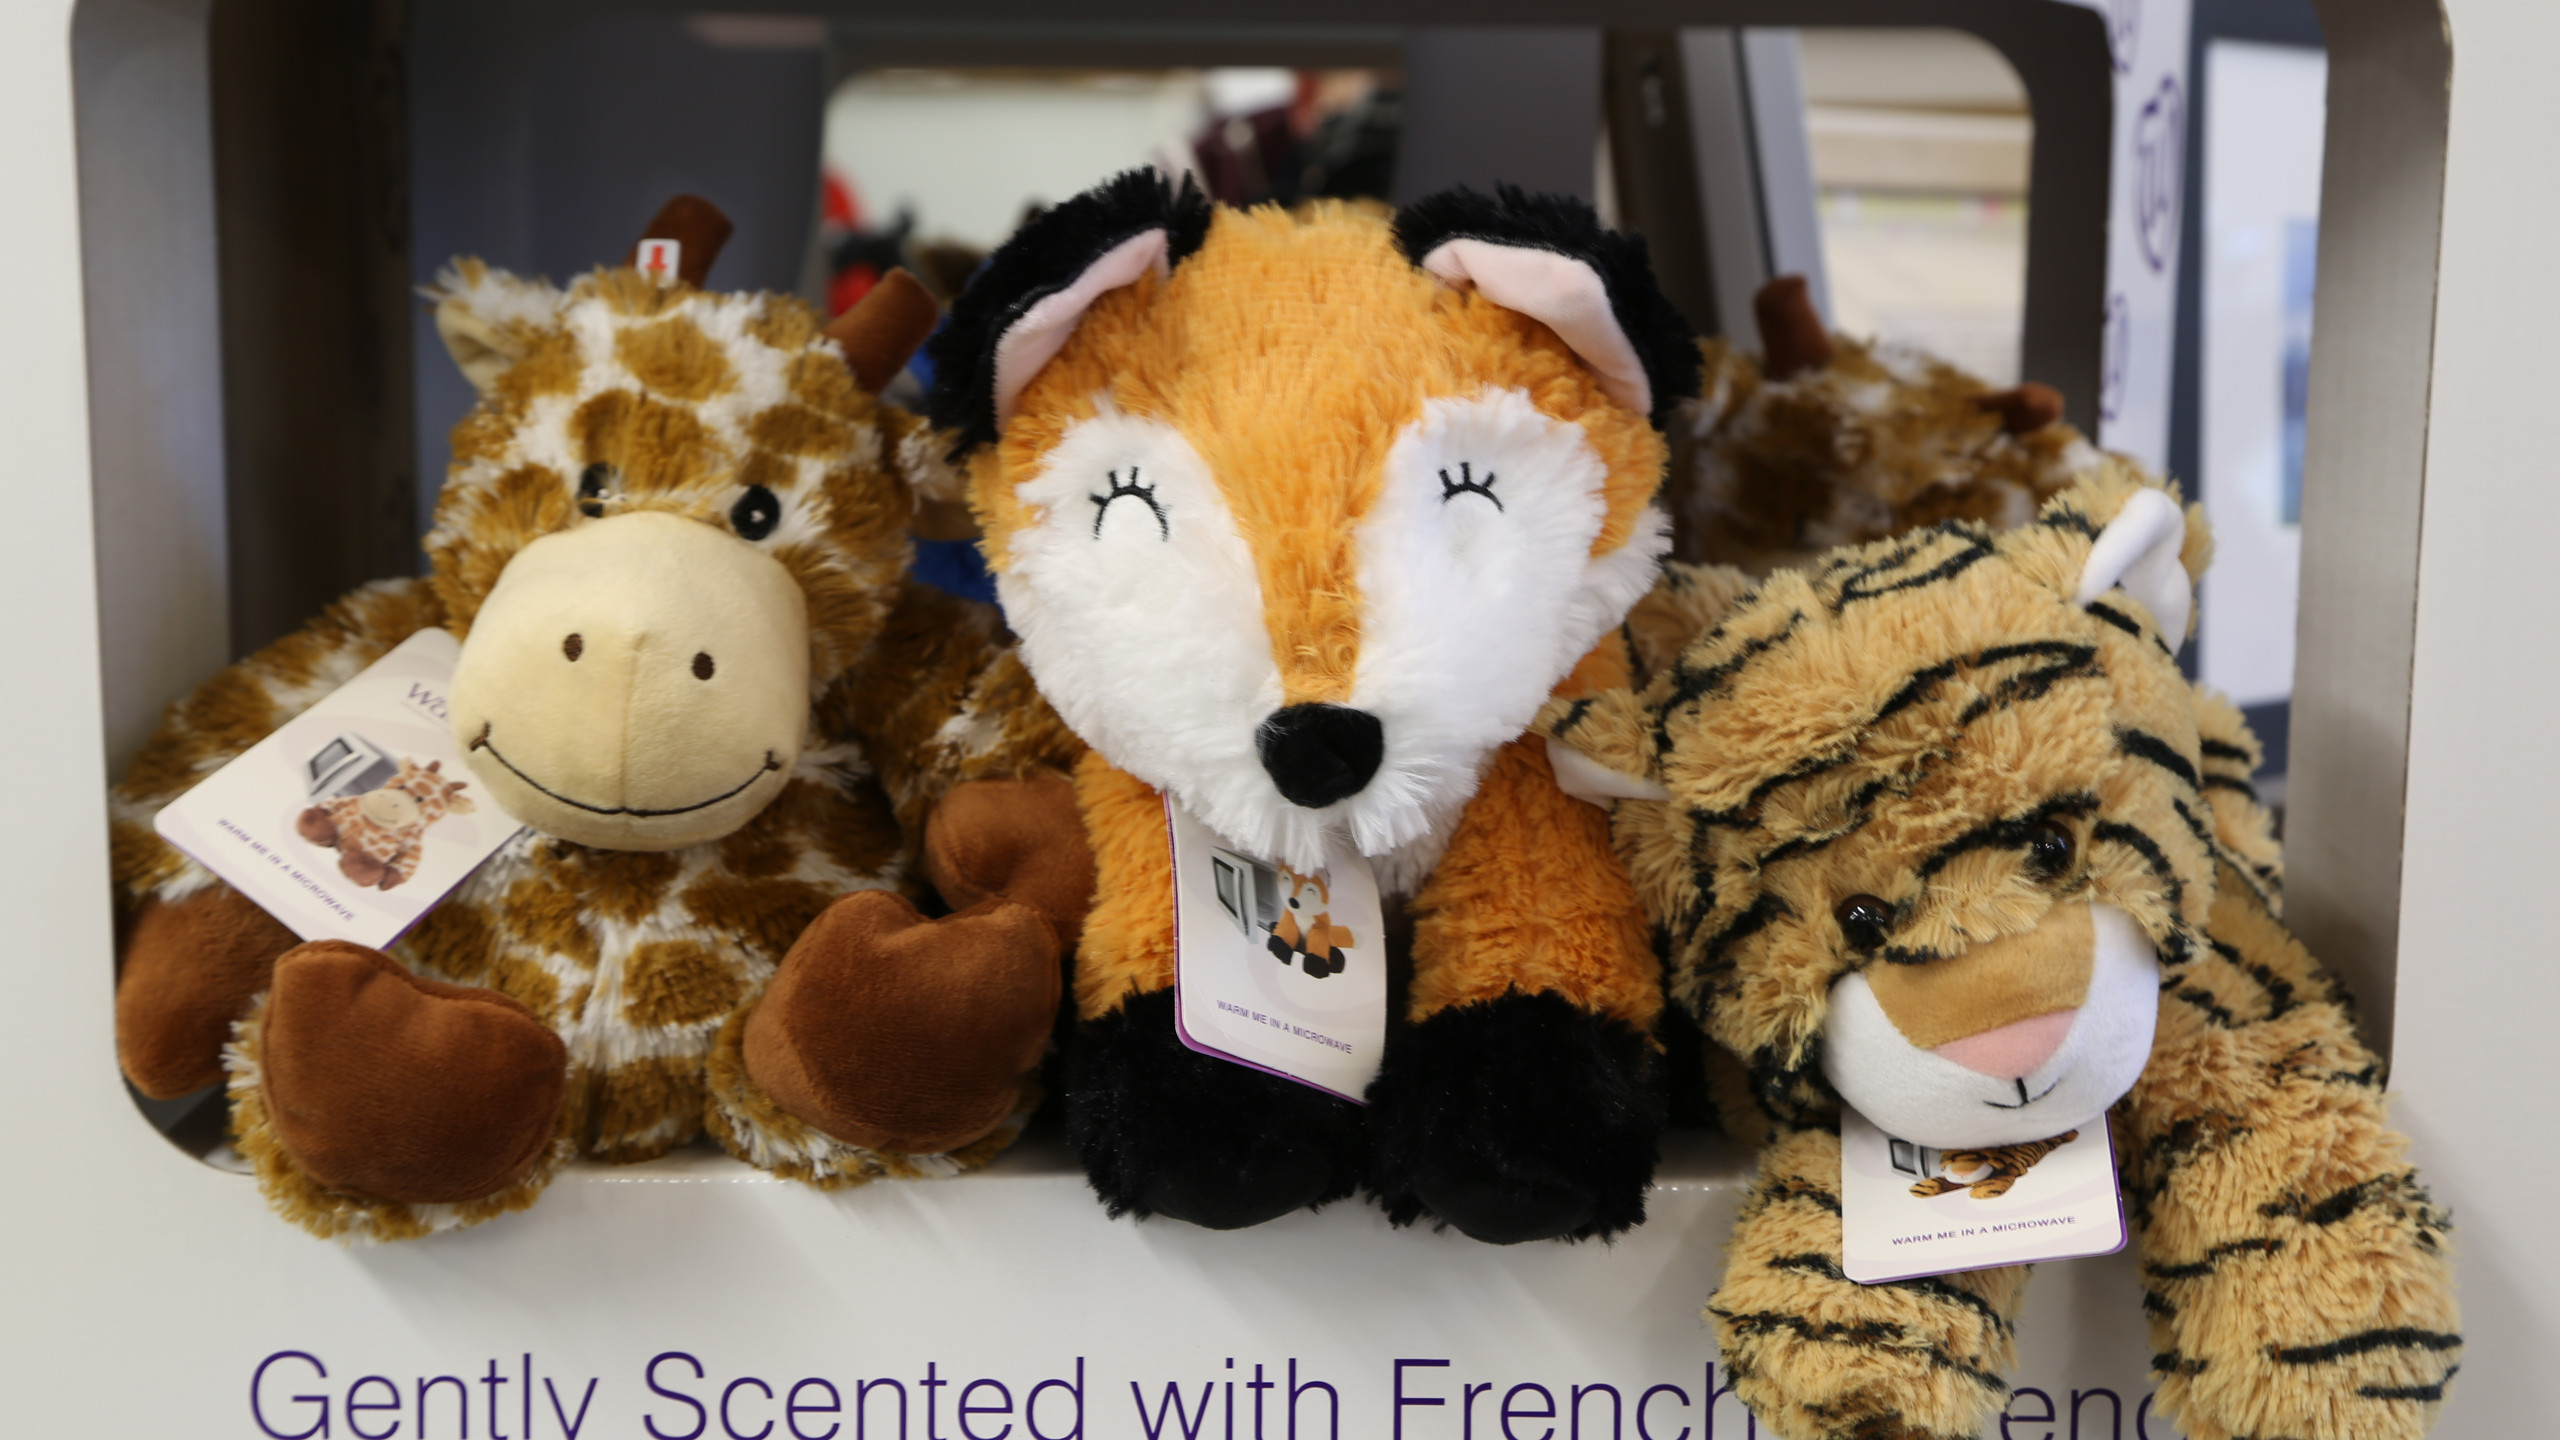 Scented cuddly toys